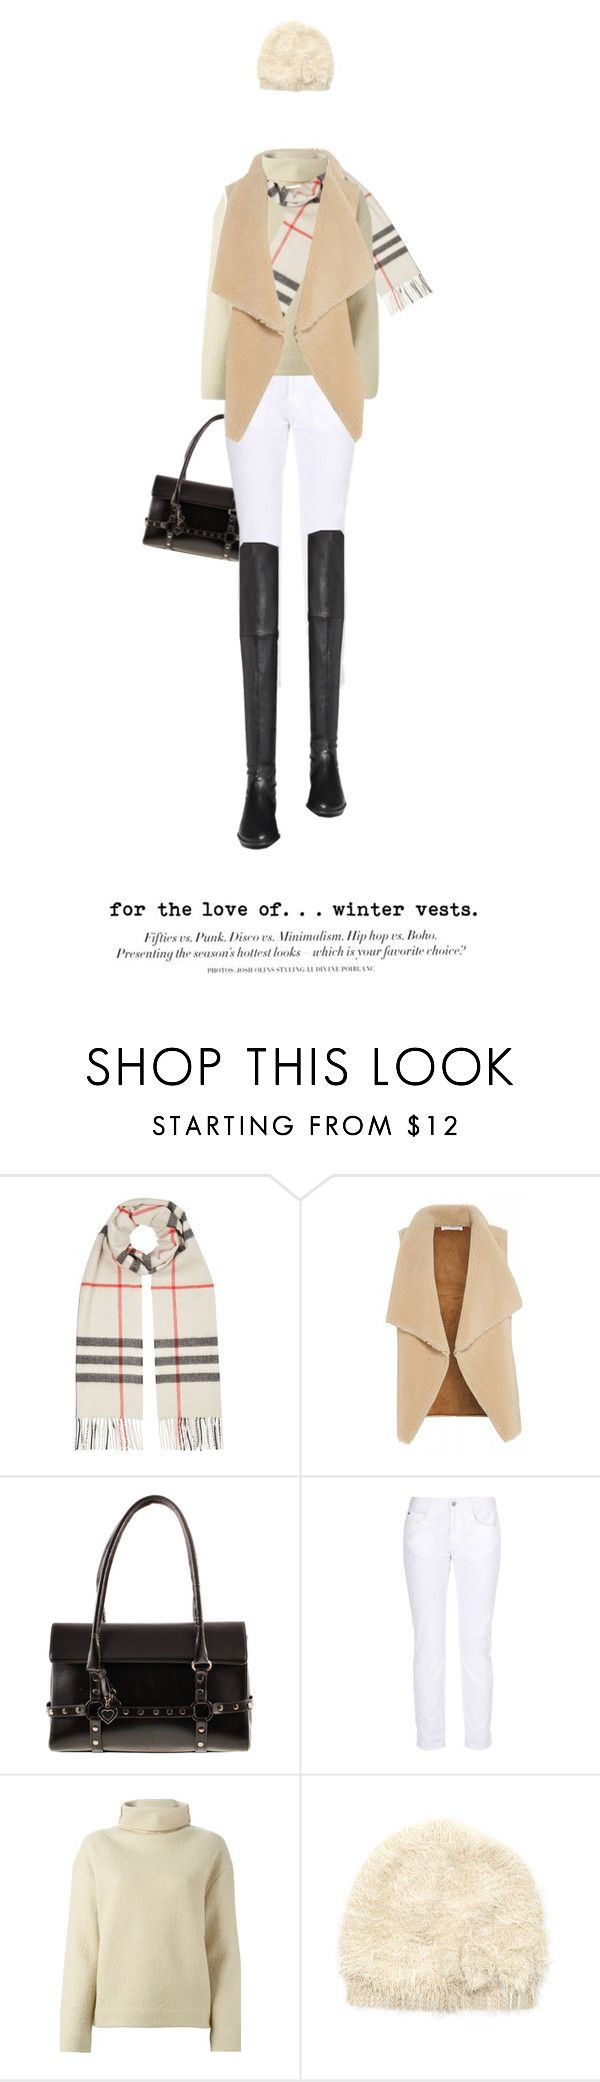 """""""in-vested"""" by maura717 ❤ liked on Polyvore featuring Burberry, Velvet by Graham & Spencer, Stuart Weitzman, STELLA McCARTNEY, Étoile Isabel Marant, Monsoon, H&M, women's clothing, women's fashion and women"""